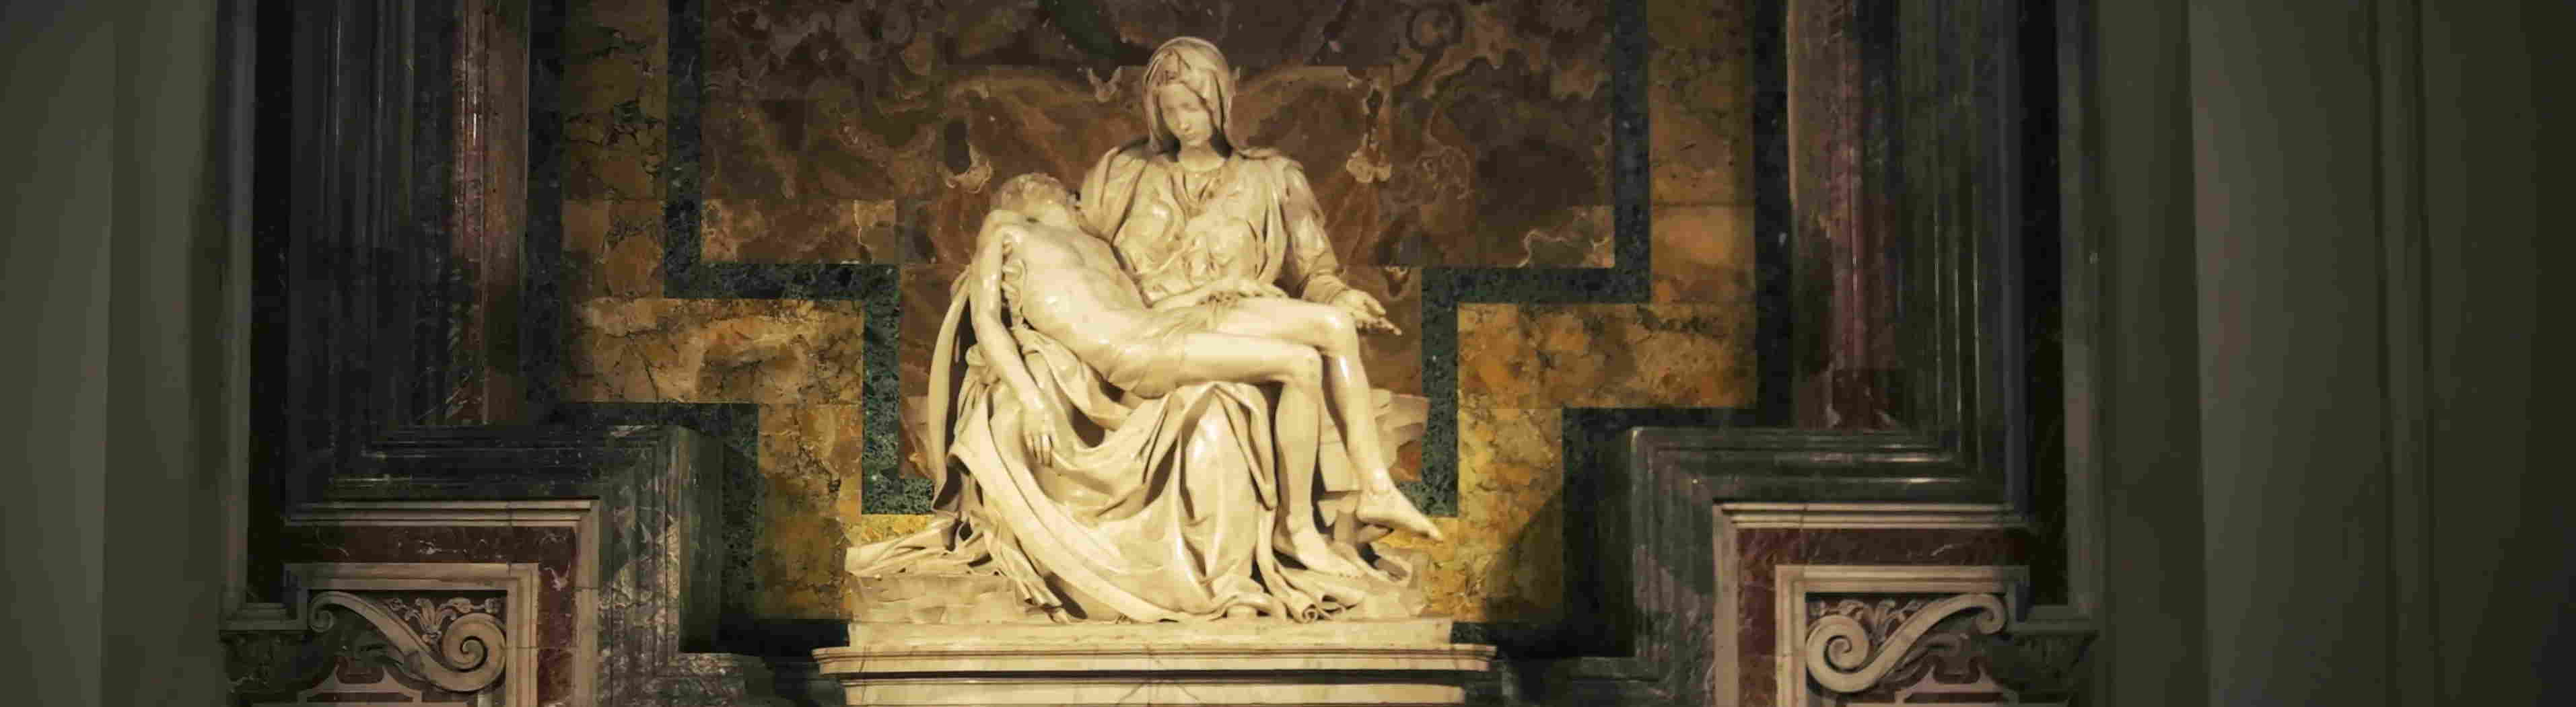 Why are marble sculptures so important in Italy?